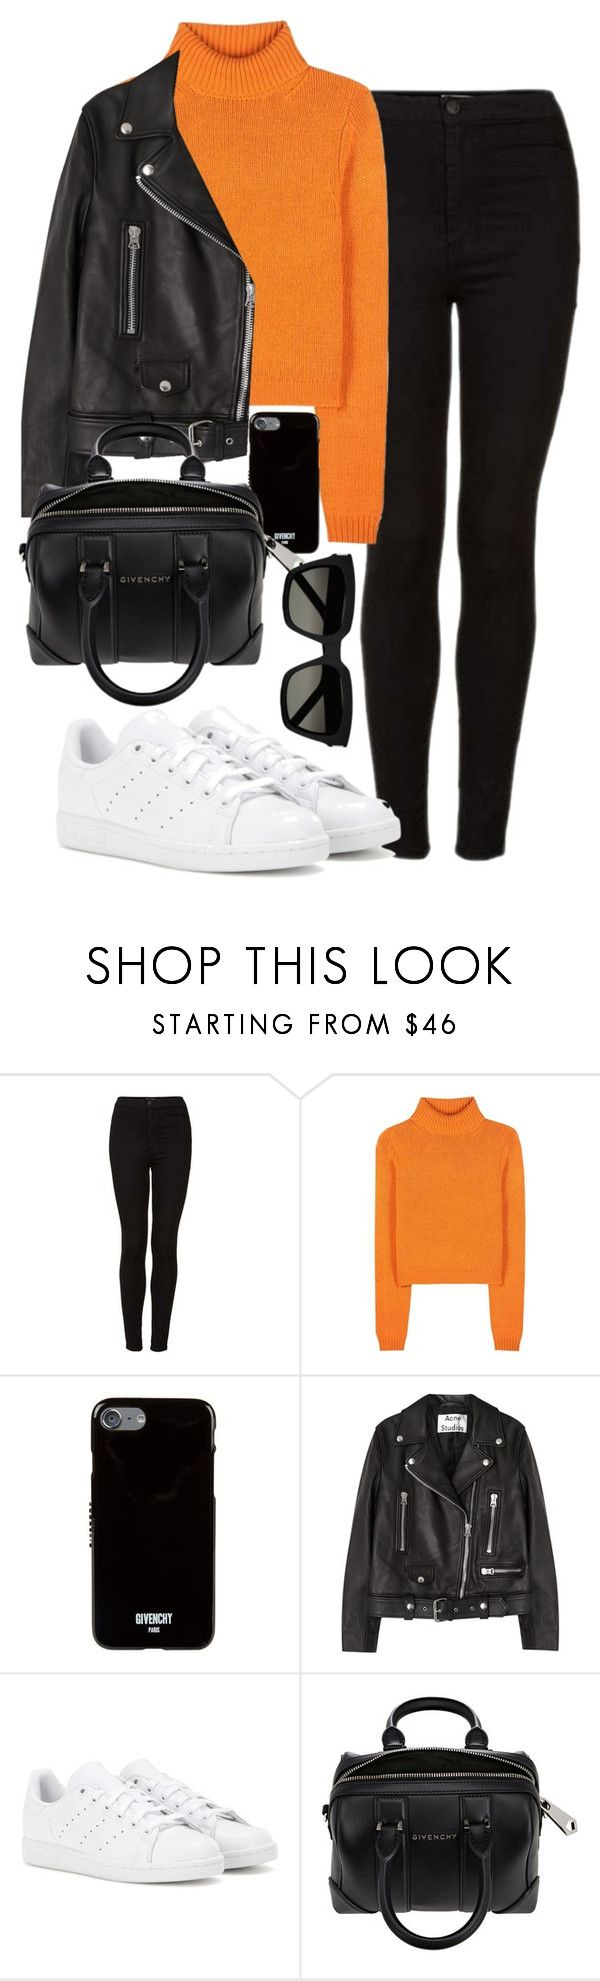 """Untitled #493"" by anassantos ❤ liked on Polyvore featuring Topshop, Acne Studios, Givenchy, adidas and Yves Saint Laurent"